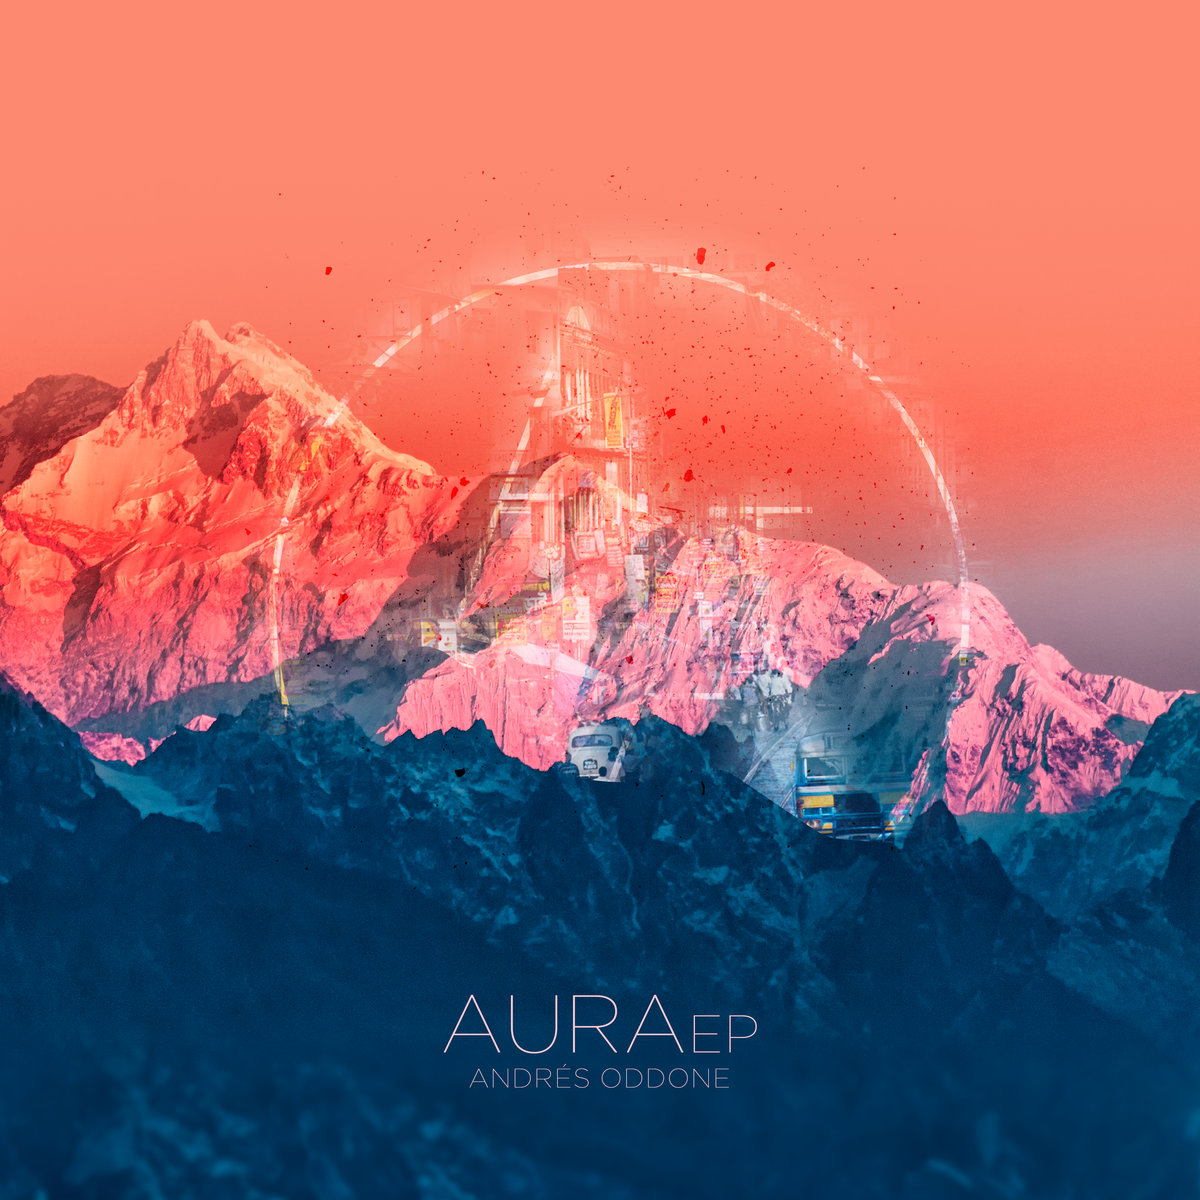 Argentinian music researcher and producer, Andres Oddone drops his Aura Ep with amazing remixes by Chancha Vía Circuito, klik & Frik, Borchi and Relo.